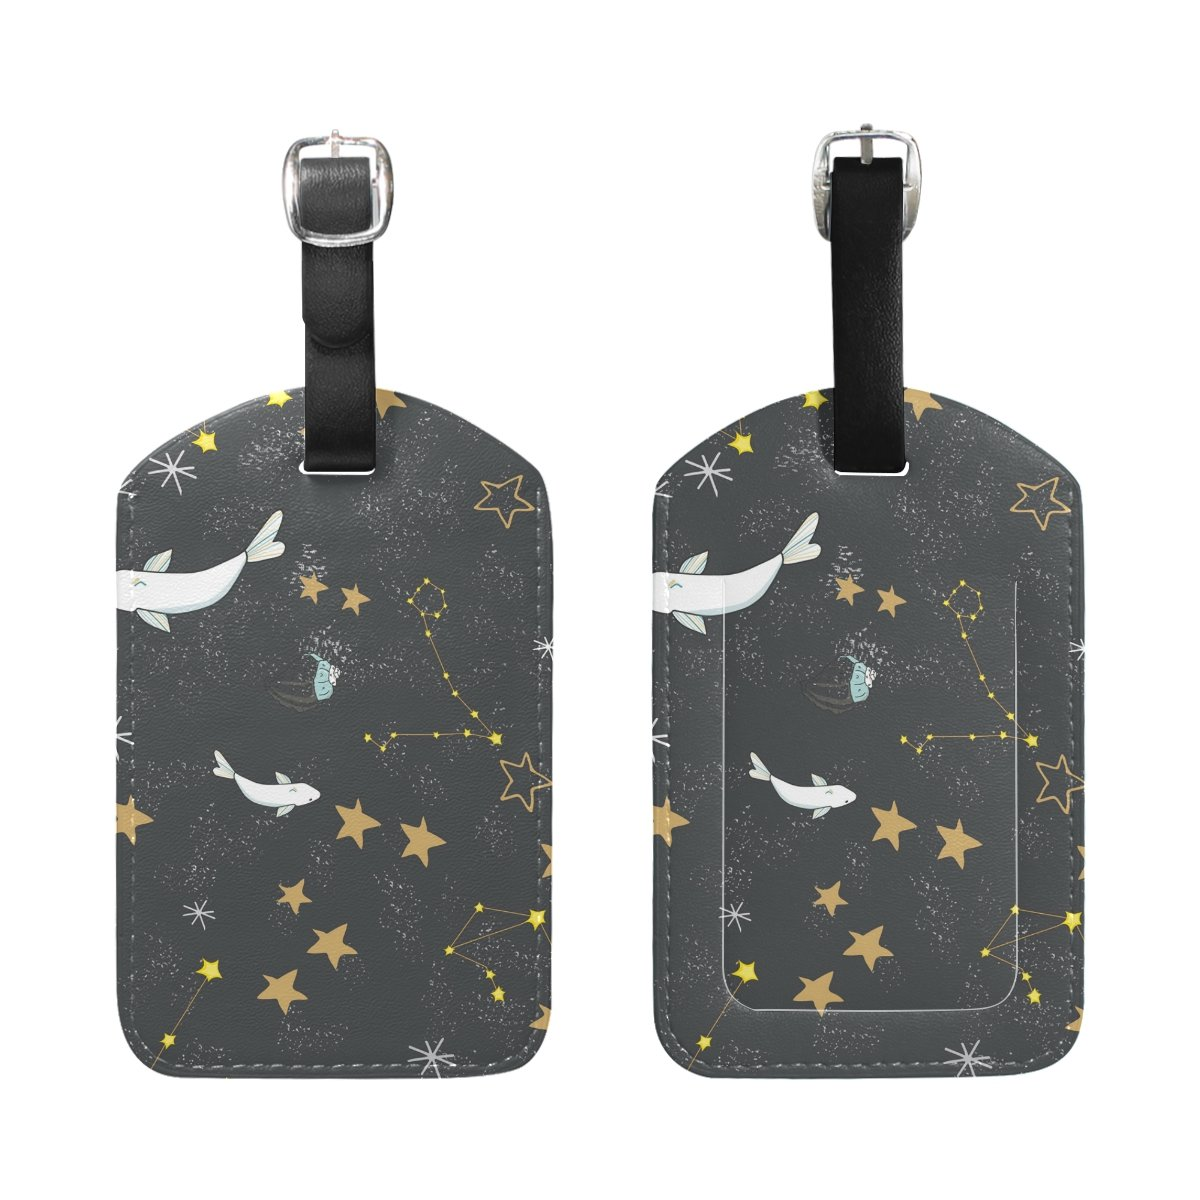 Saobao Travel Luggage Tag Yellow Stars And Fishes PU Leather Baggage Travel ID